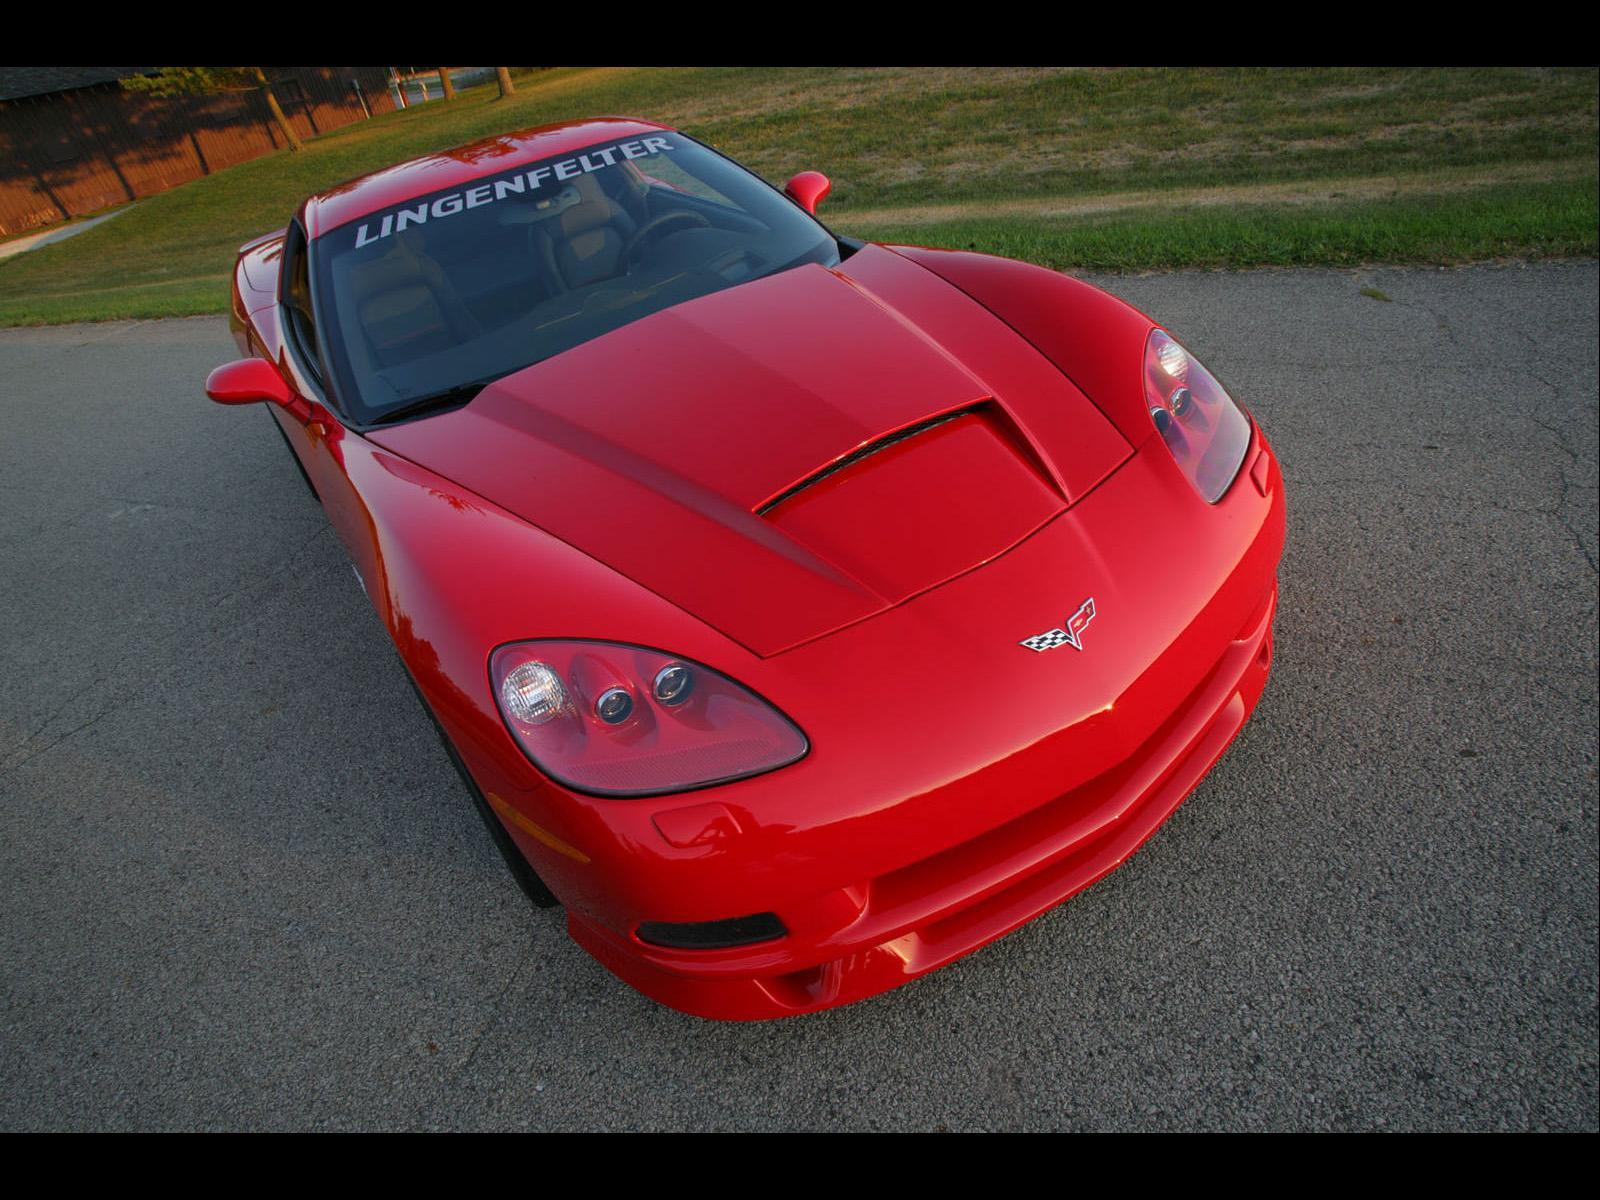 Lingenfelter Chevrolet Corvette Commemorative Edition photo 28053